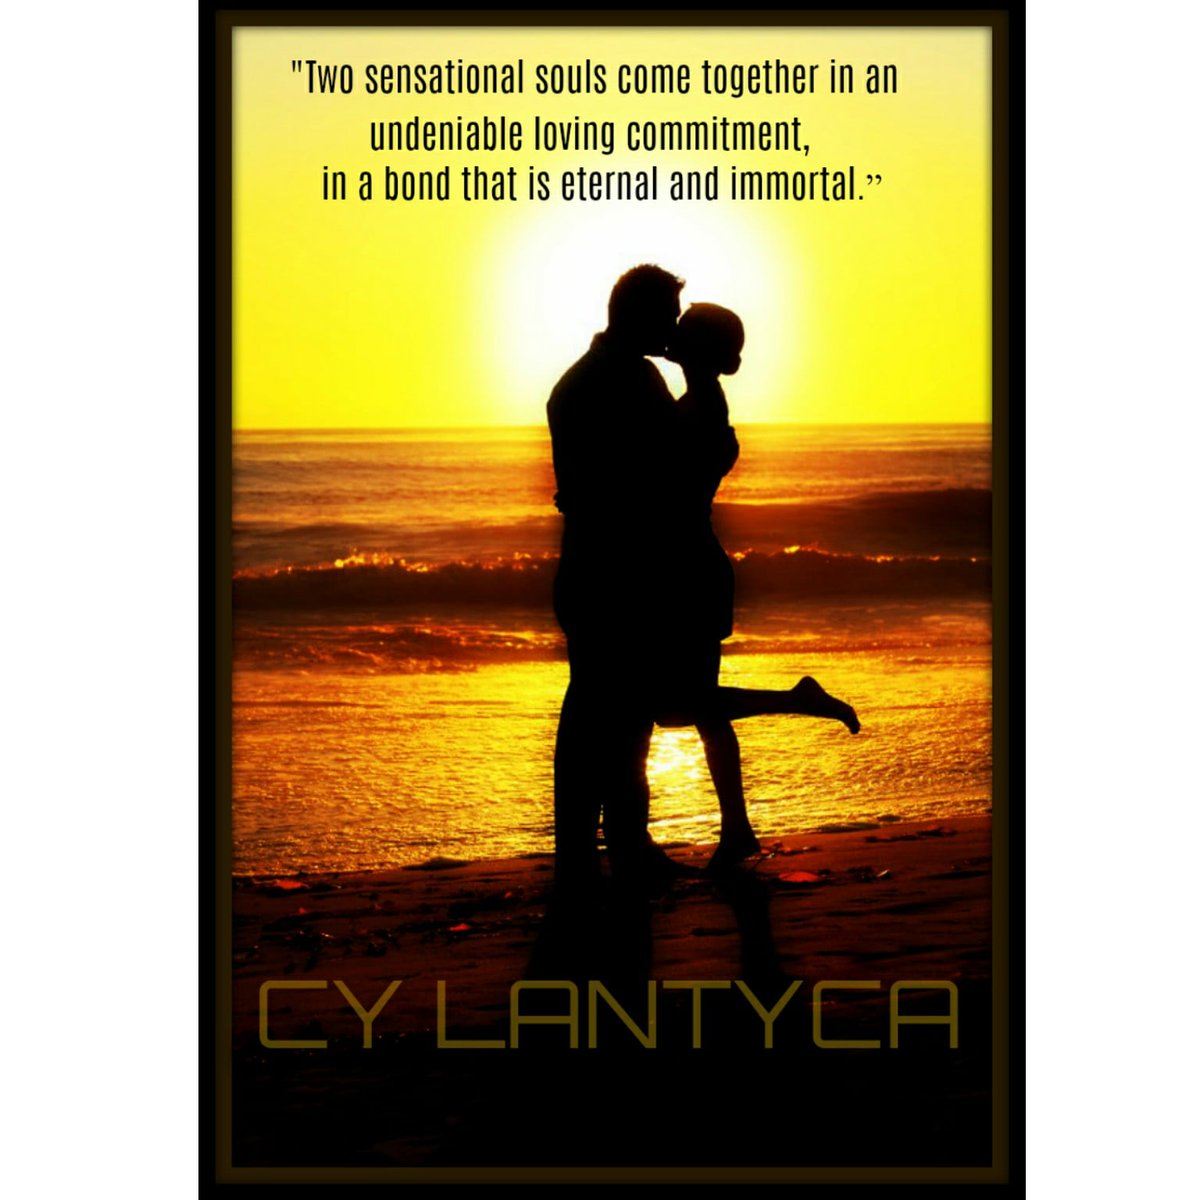 Romance and Adventures in the Abundance!   Go download #CyLantyca for free !   #urbanfantasy #booklovers #fantasy #urbanfantasy #romance #bookaddict #womensfiction #epicreads #romance #booklove #bookworm #love #bookaholic